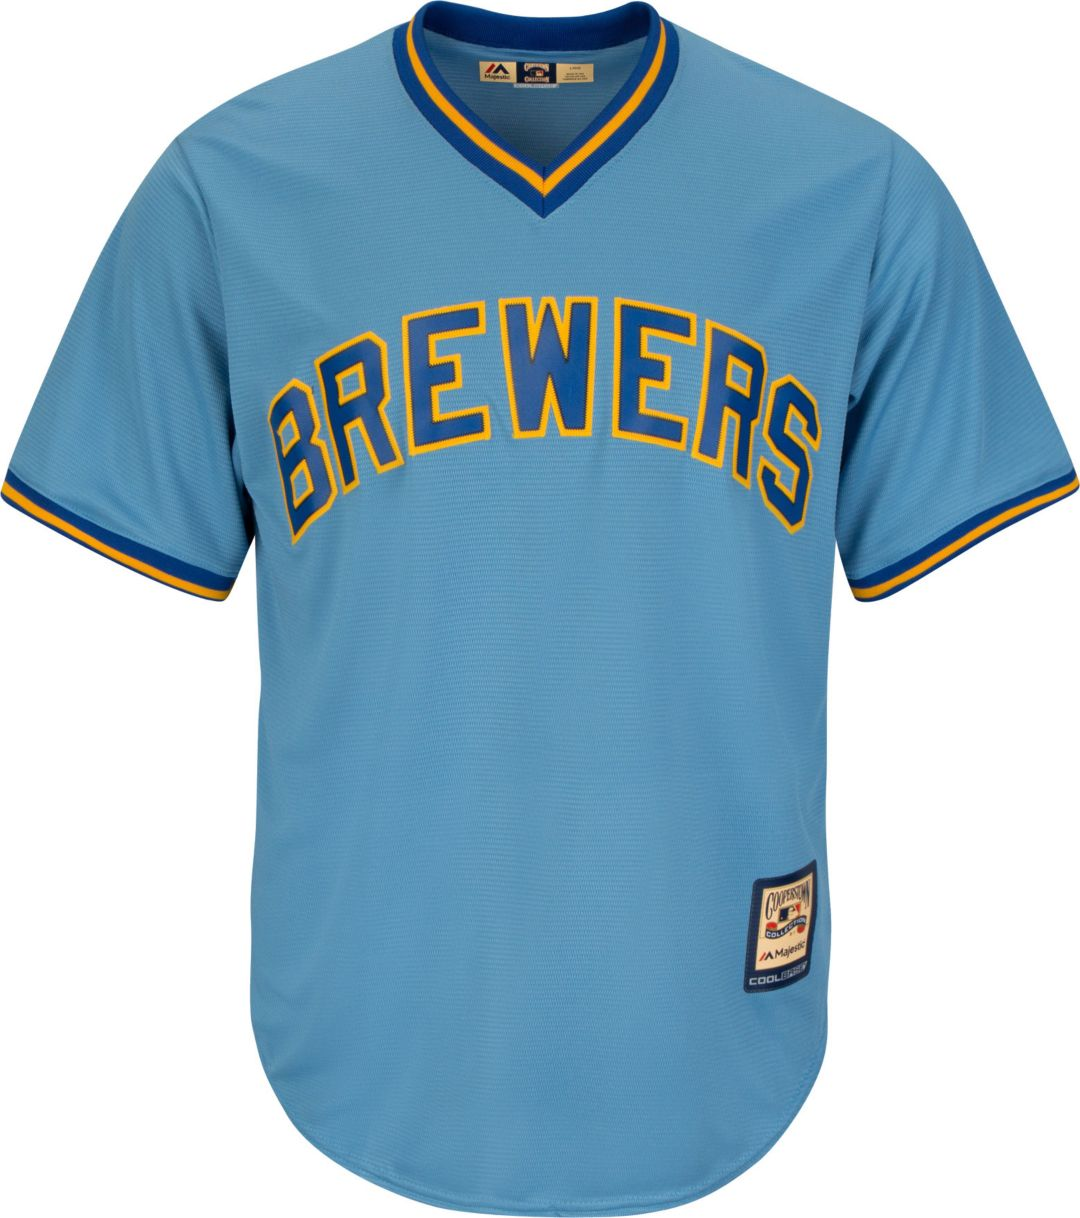 online store d2d2b 8ee61 Majestic Men's Replica Milwaukee Brewers Cool Base Light Blue Cooperstown  Jersey